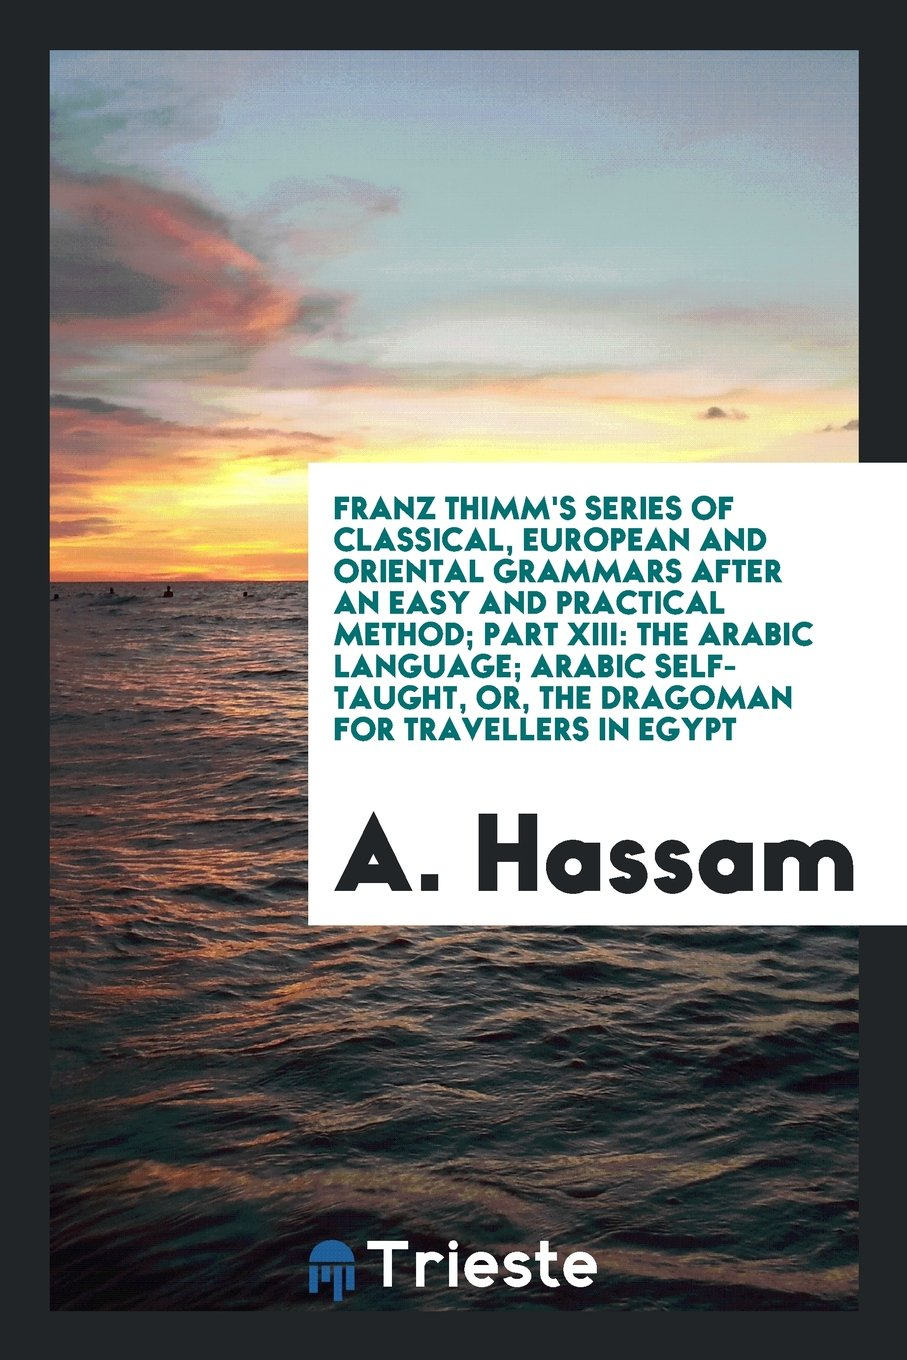 Franz Thimm's Series of Classical, European and Oriental Grammars After an Easy and Practical Method; Part XIII: The Arabic Language; Arabic Self-Taught, or, the Dragoman for Travellers in Egypt